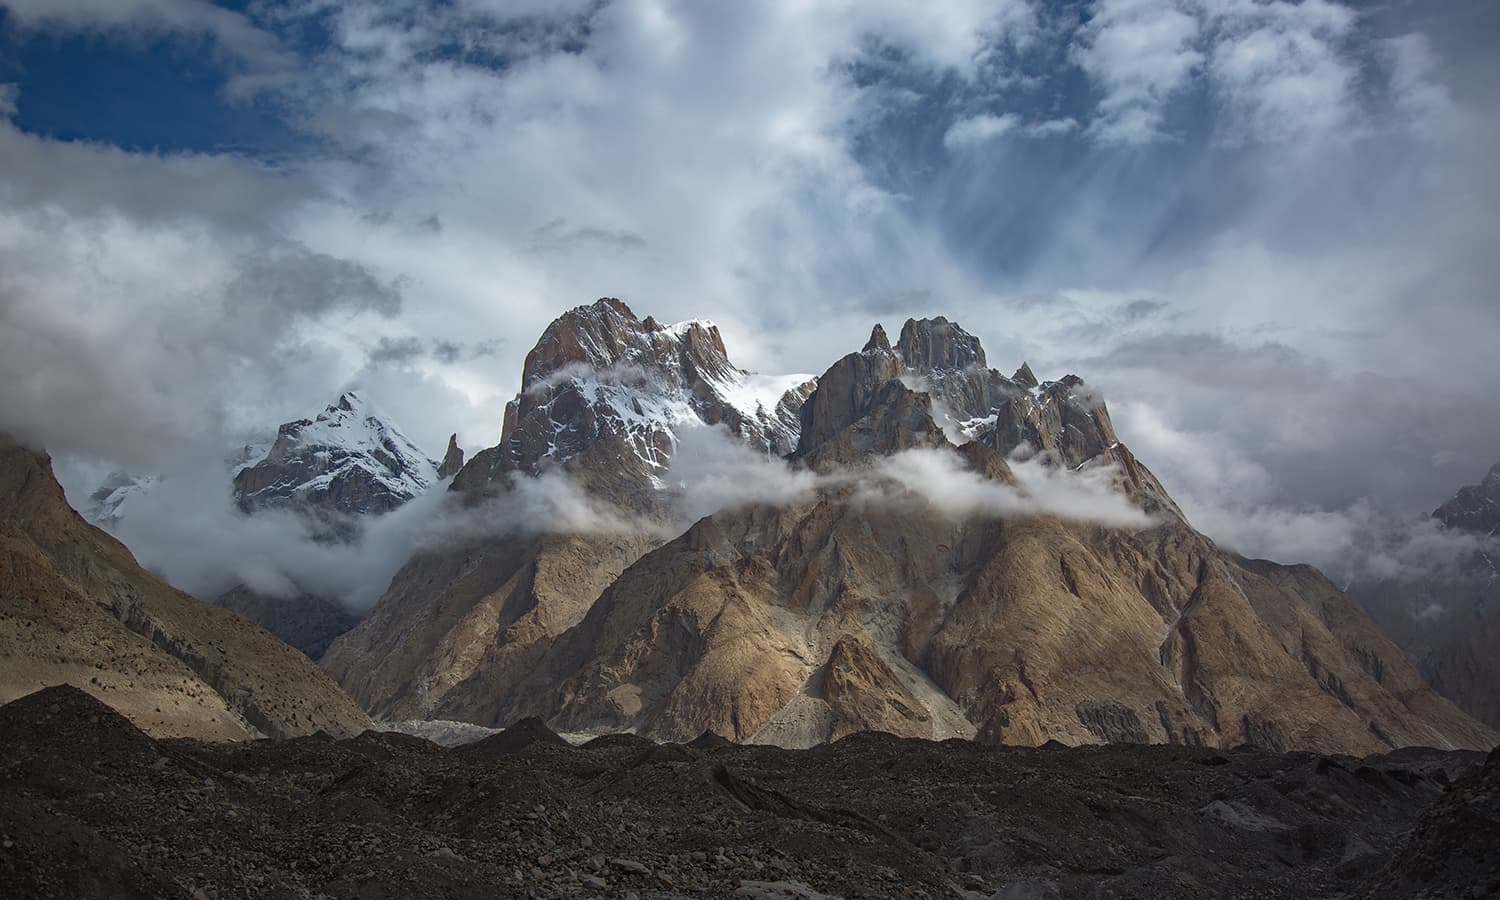 First views of the Trango Group. The highest summit is 6,286m and these granite spires present one of the most challenging climbs in the world.